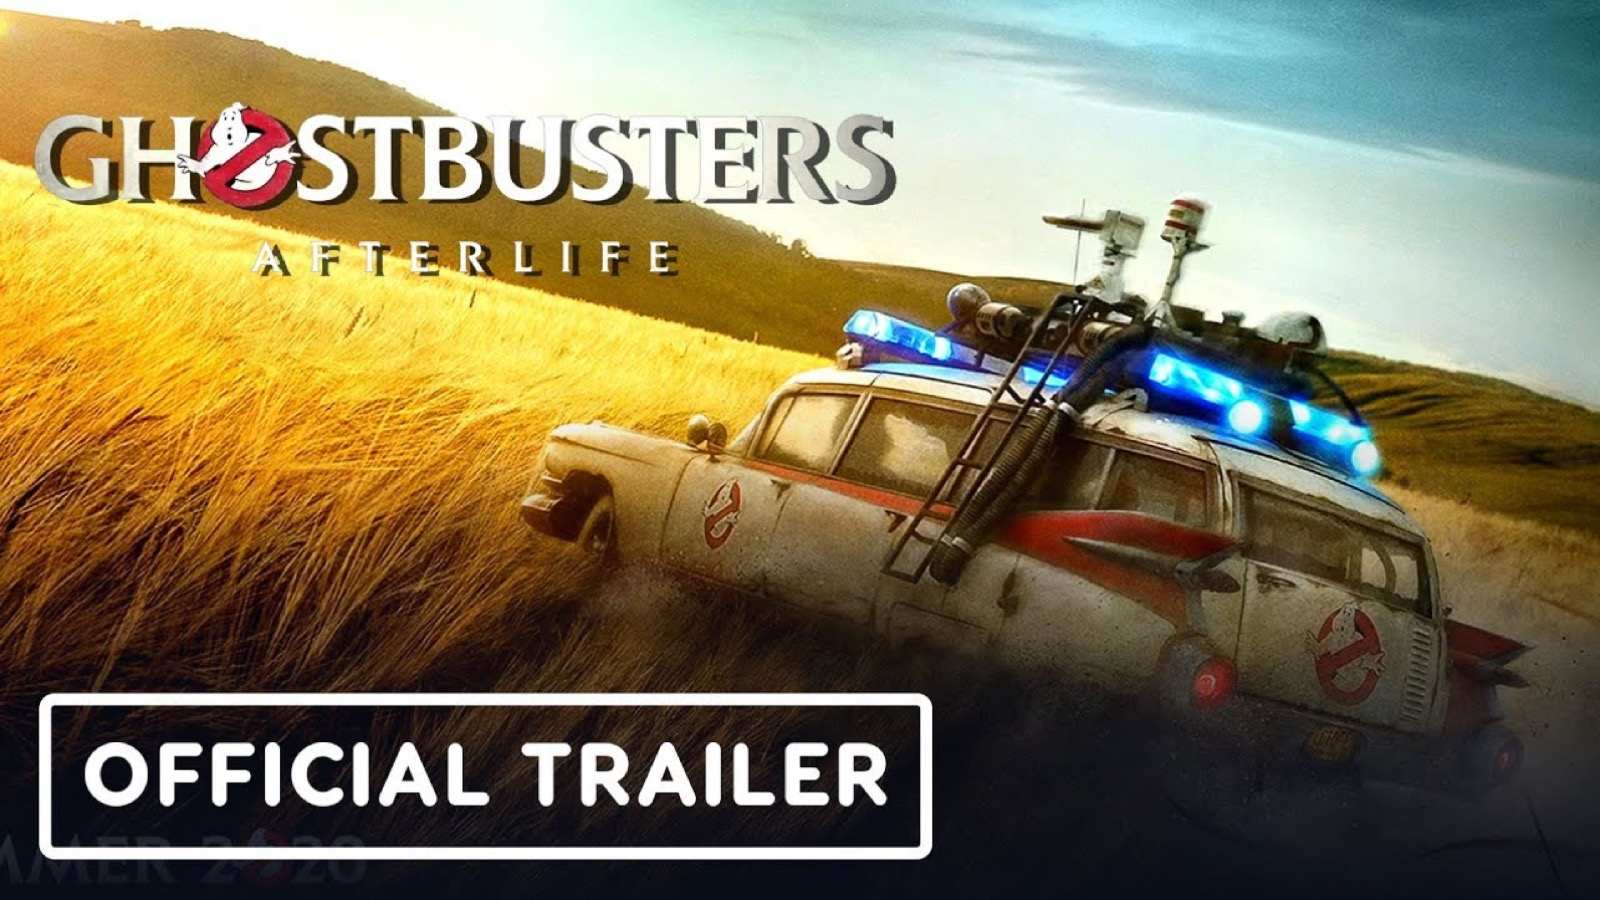 Ghostbusters: Afterlife Trailer Brings Nostalgia, But No Laughs